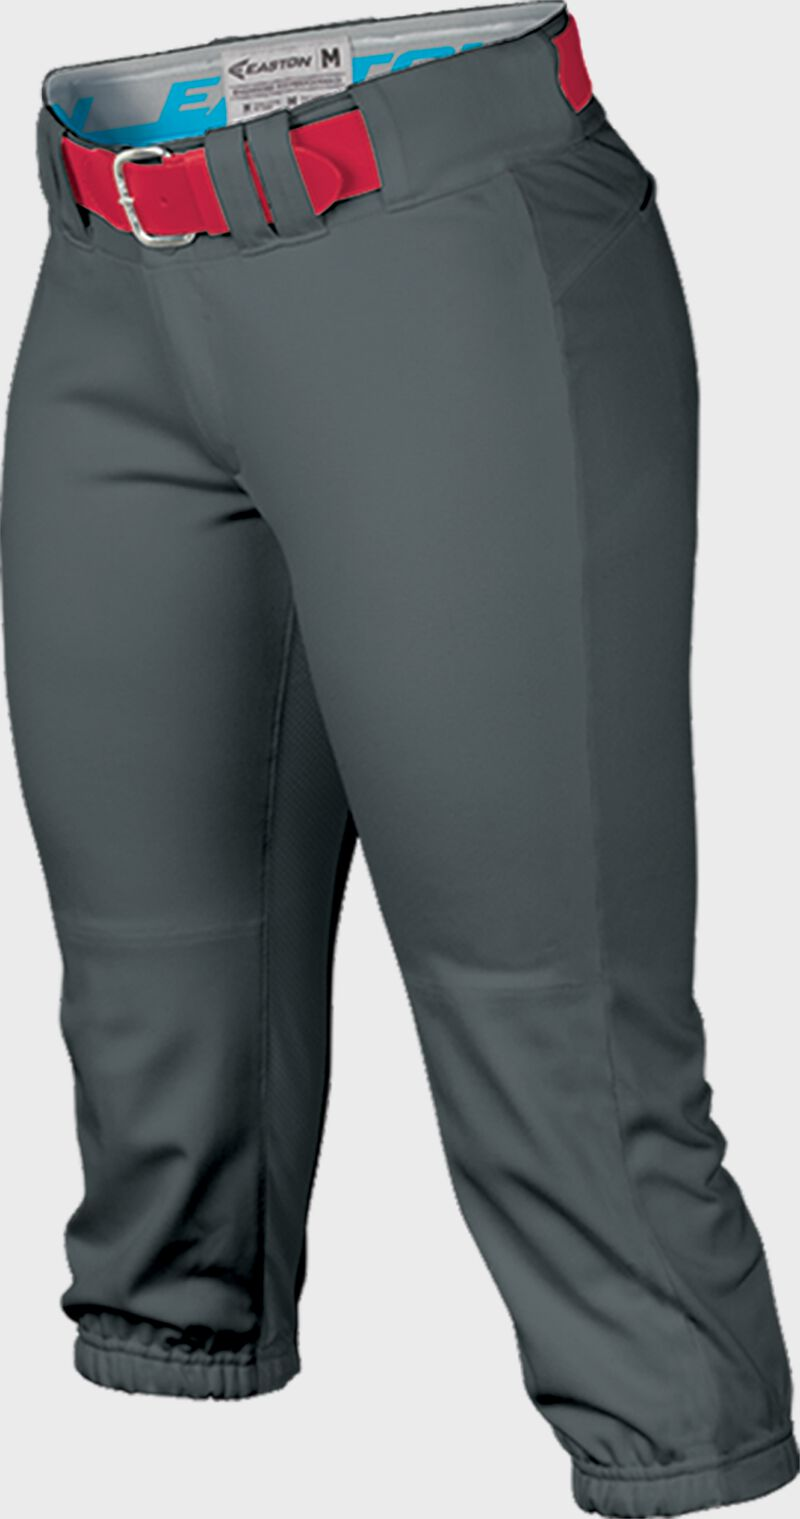 Youth Prowess Softball Pant